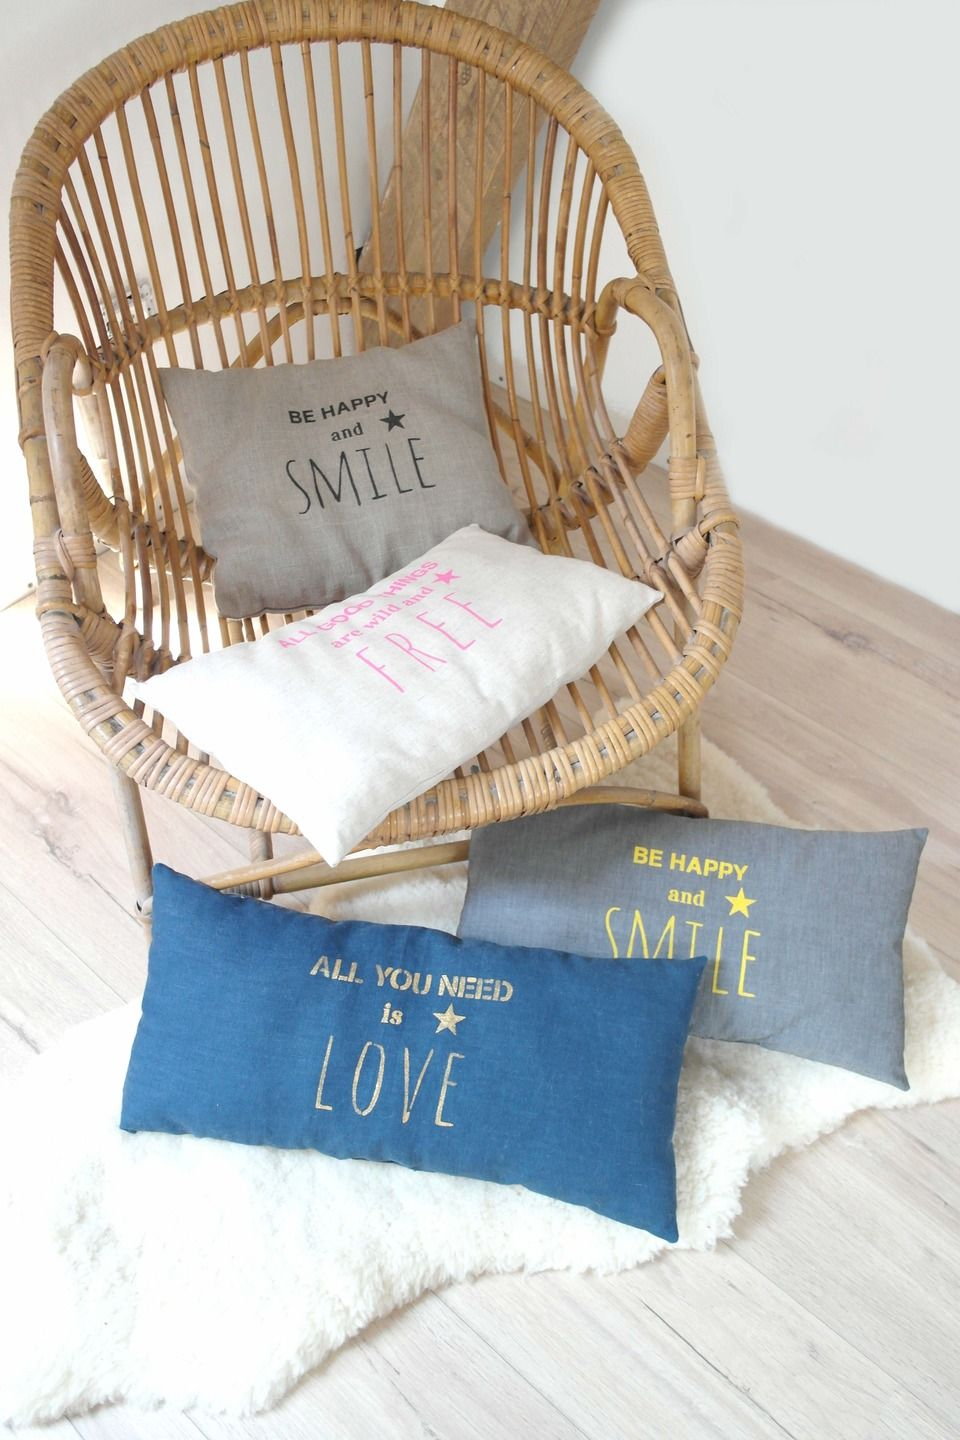 coussin typographie be happy and smile en lin naturel avec inscription noire textiles et. Black Bedroom Furniture Sets. Home Design Ideas